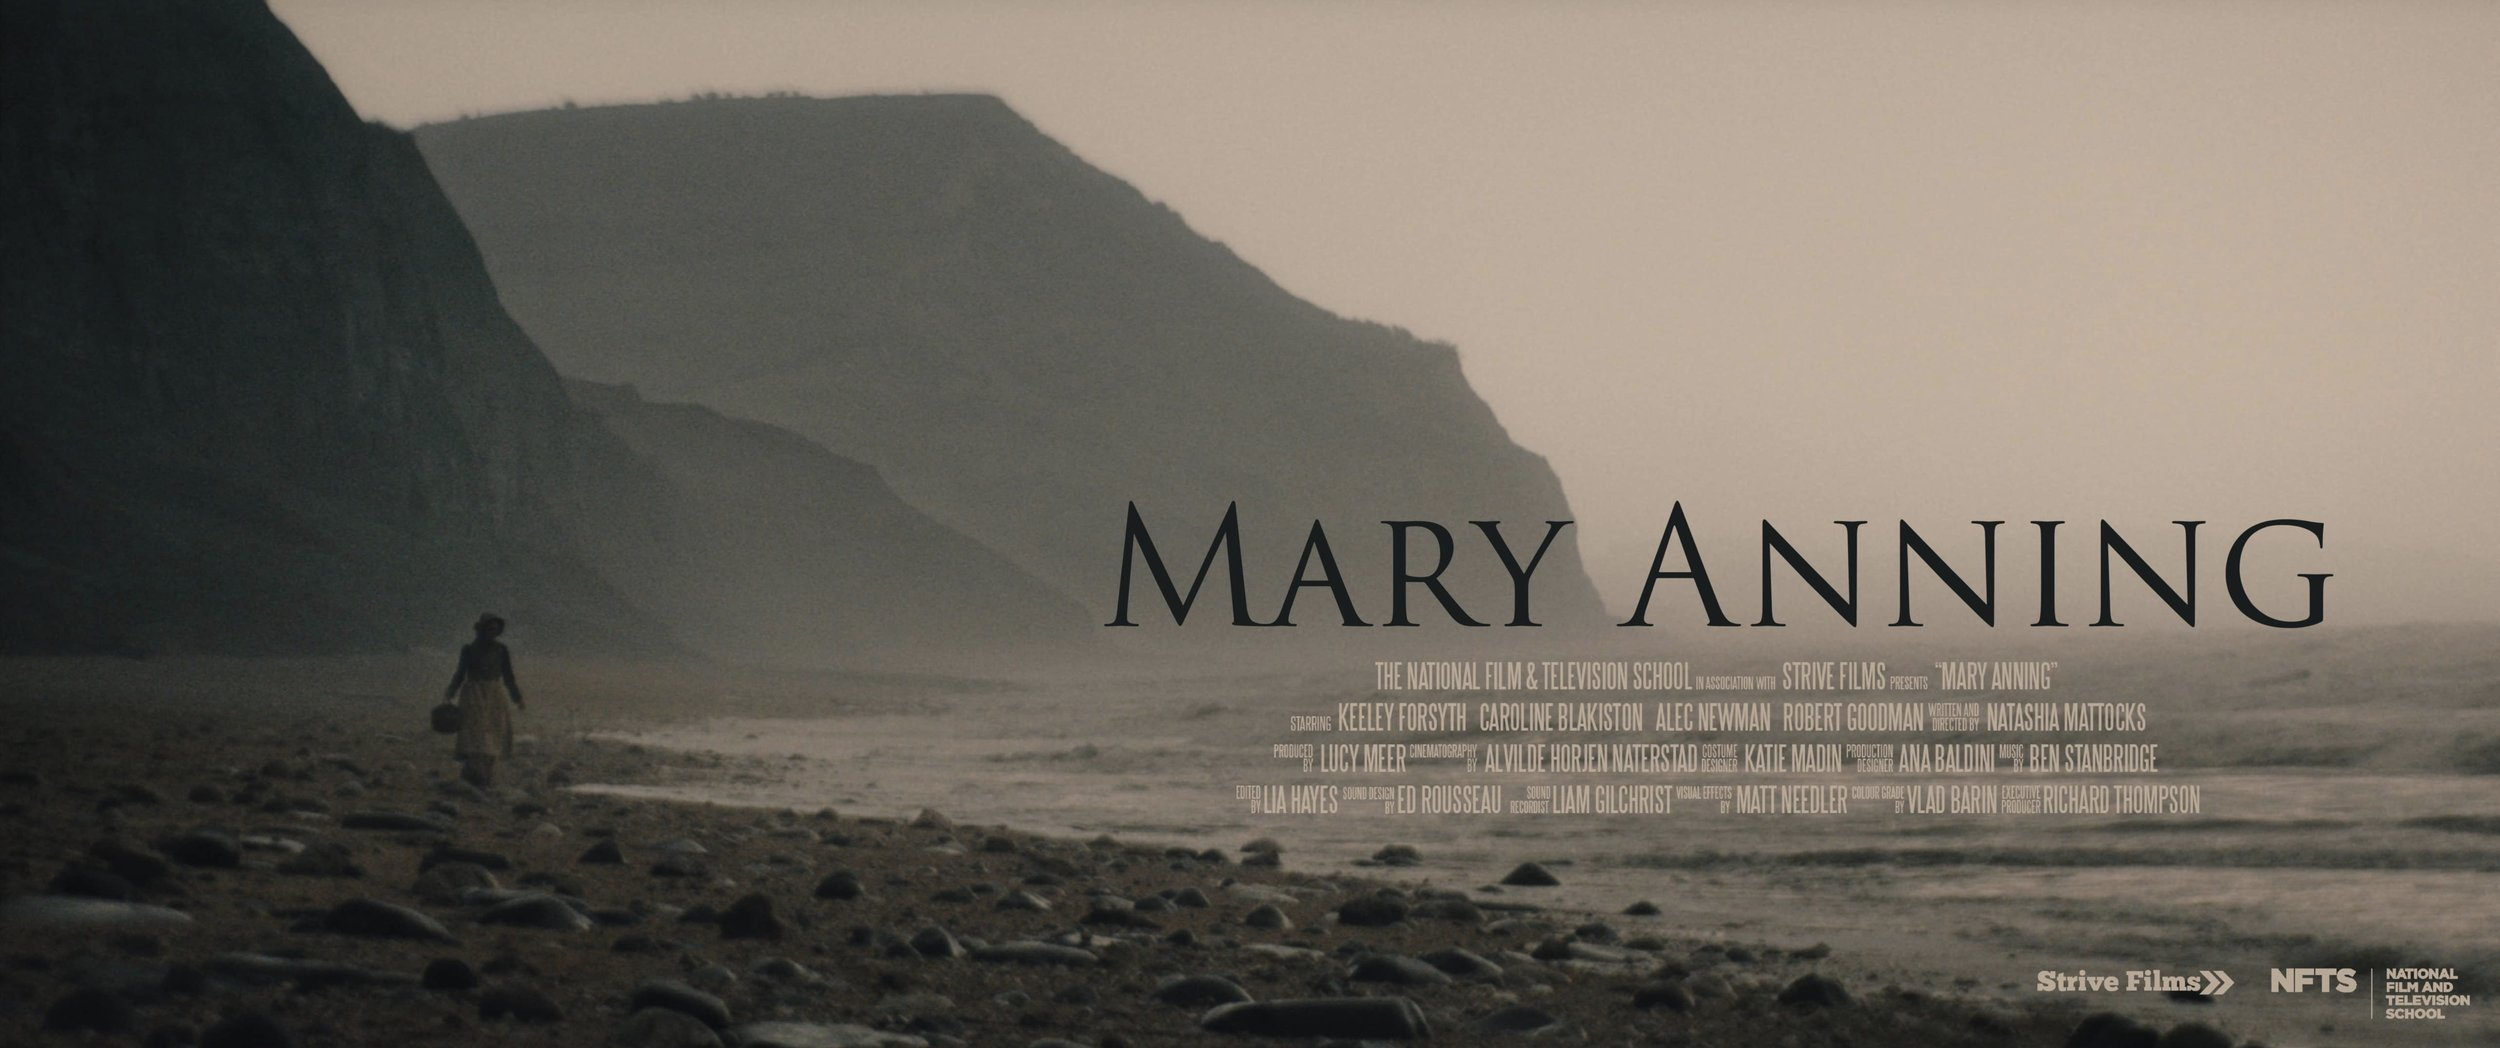 MARY ANNING | 2018 | 21 MINS | DRAMA - BAFTA LONG-LISTED